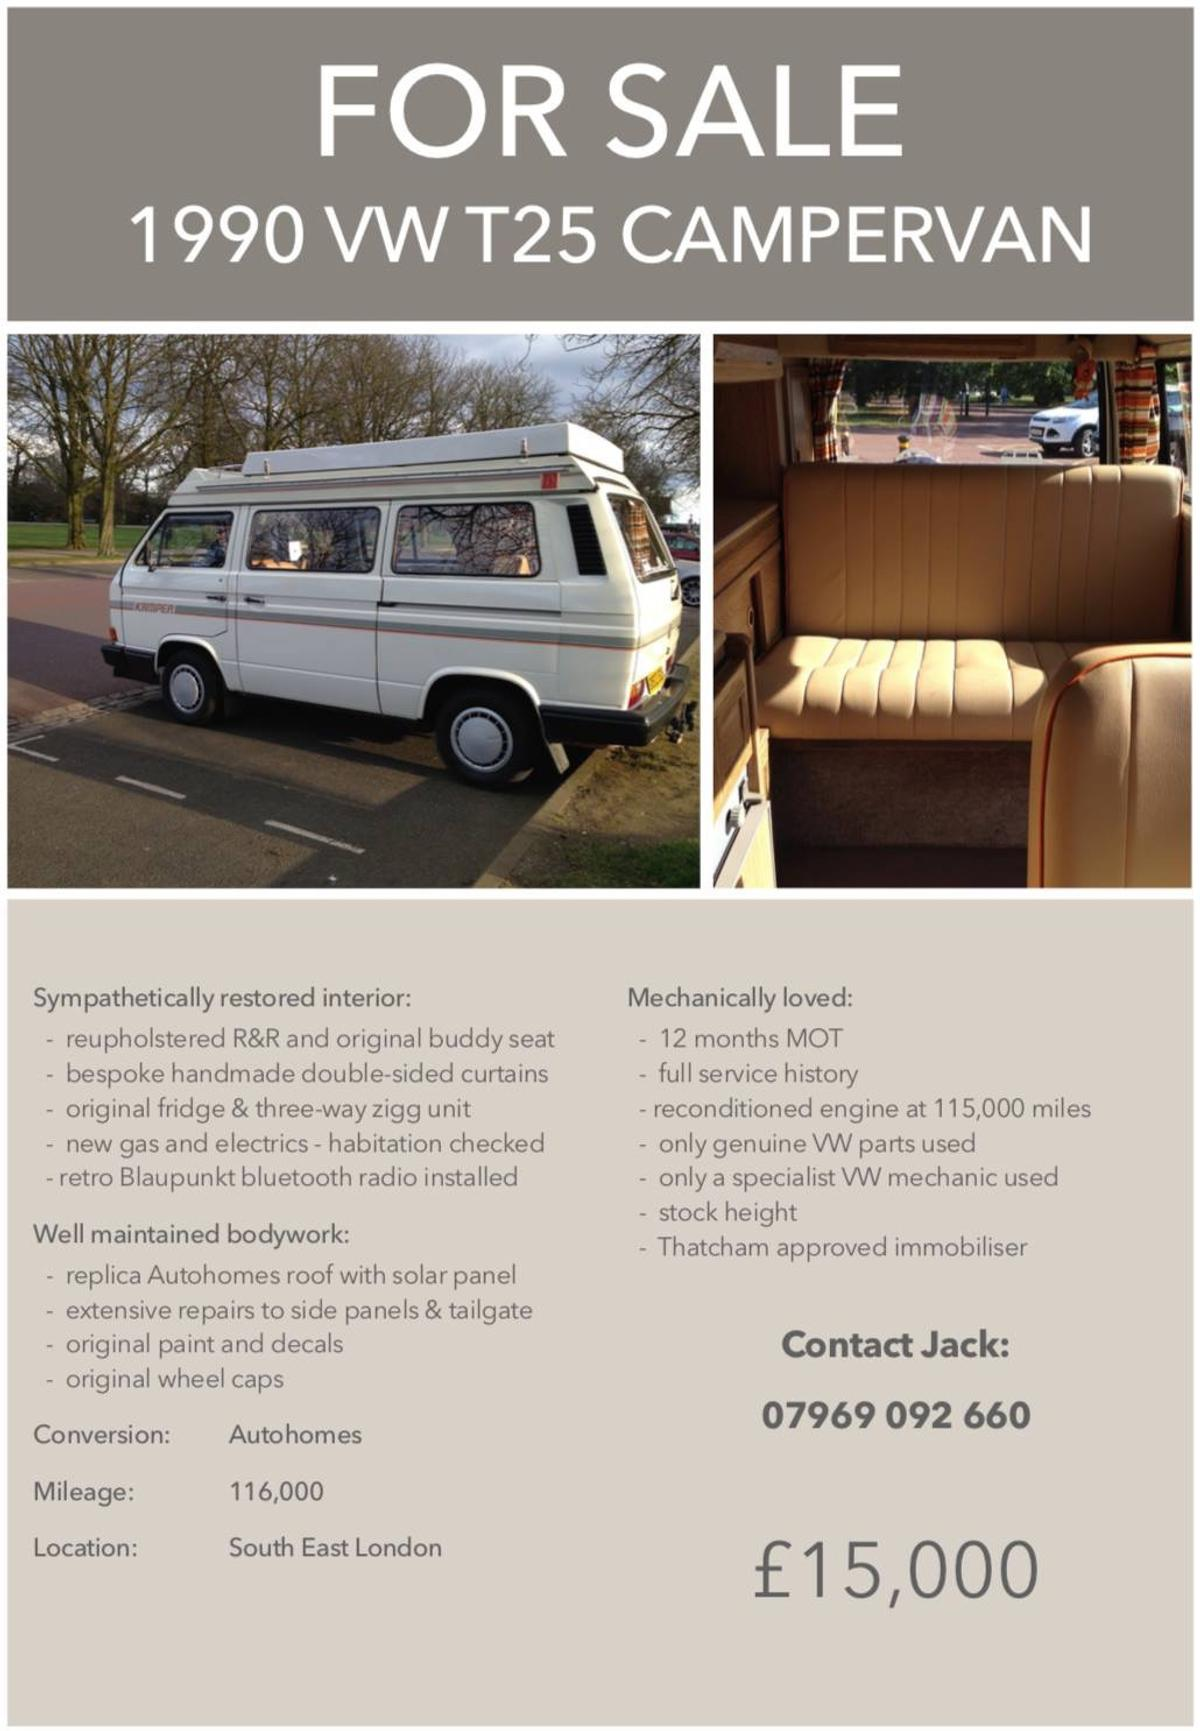 VW T25 in BR7 London for £13,000 00 for sale - Shpock